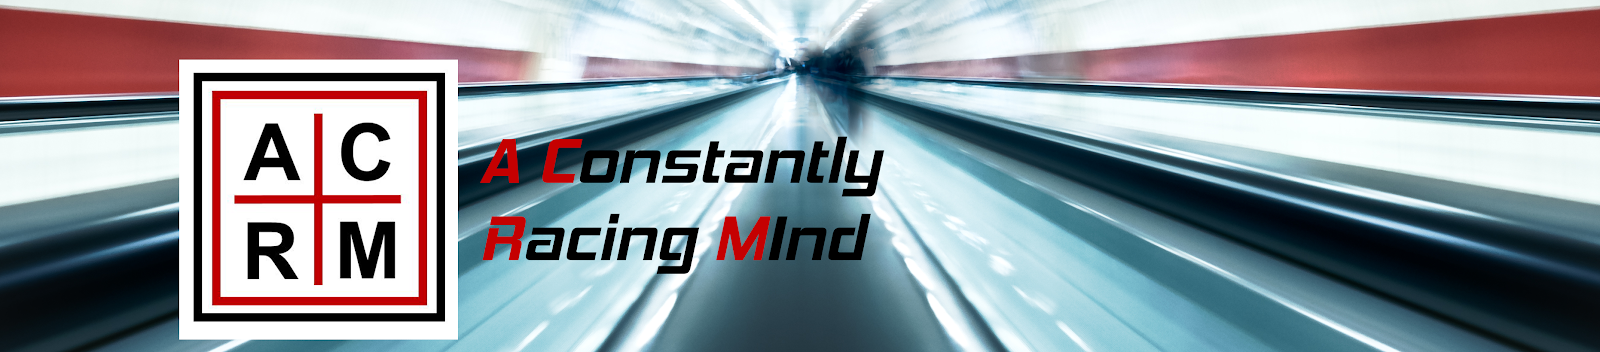 A Constantly Racing Mind...